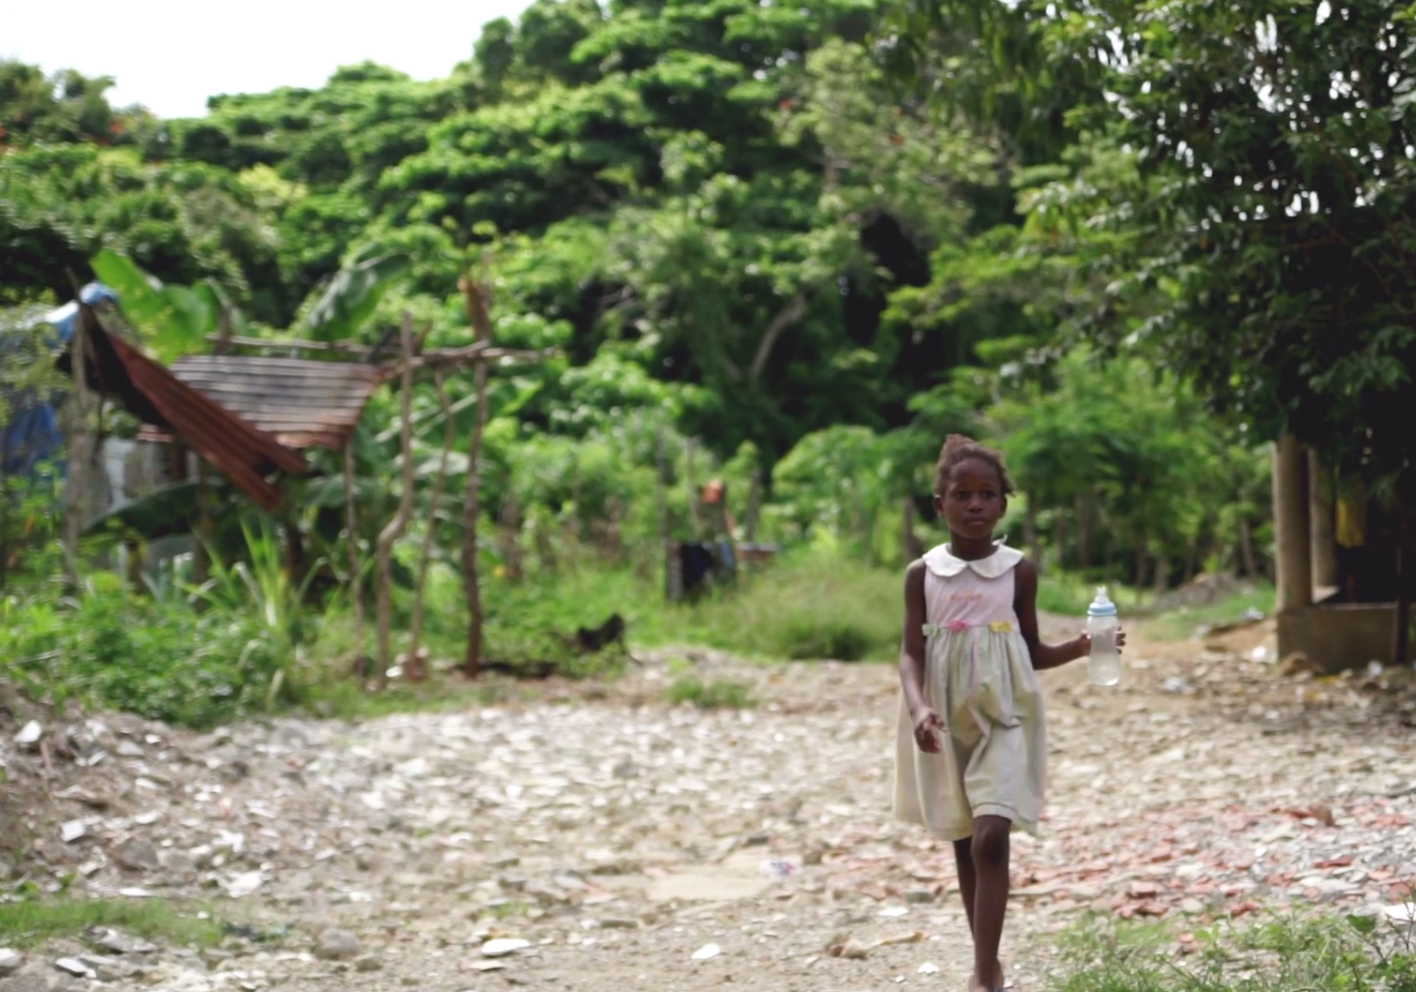 Striking Out Poverty in the Dominican Republic